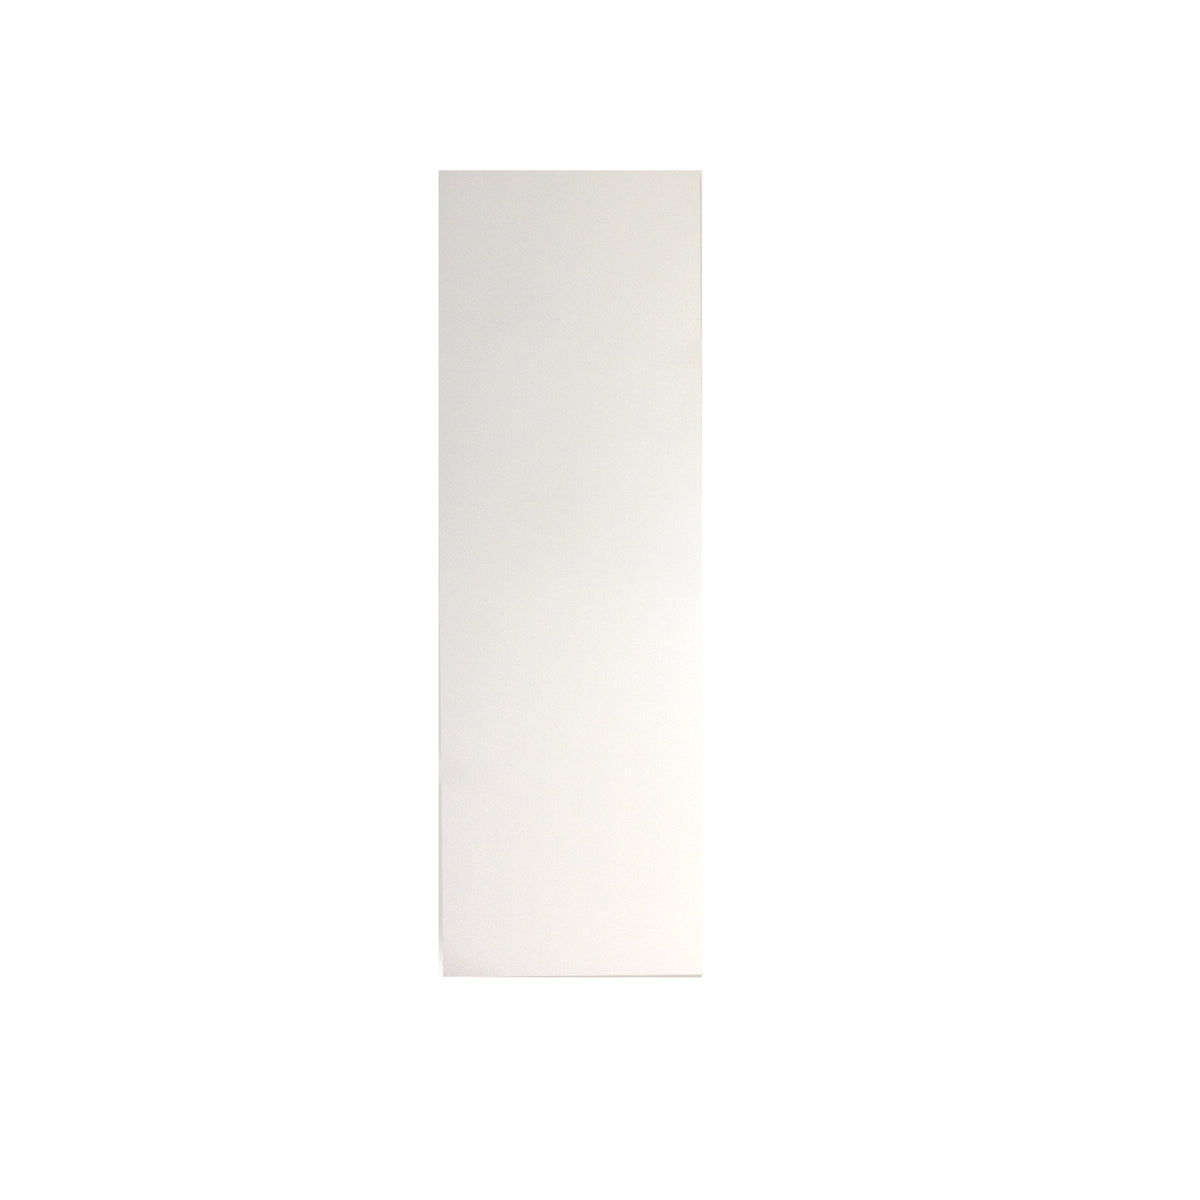 Skin Panel for Inset Vintage White raised Panel Style